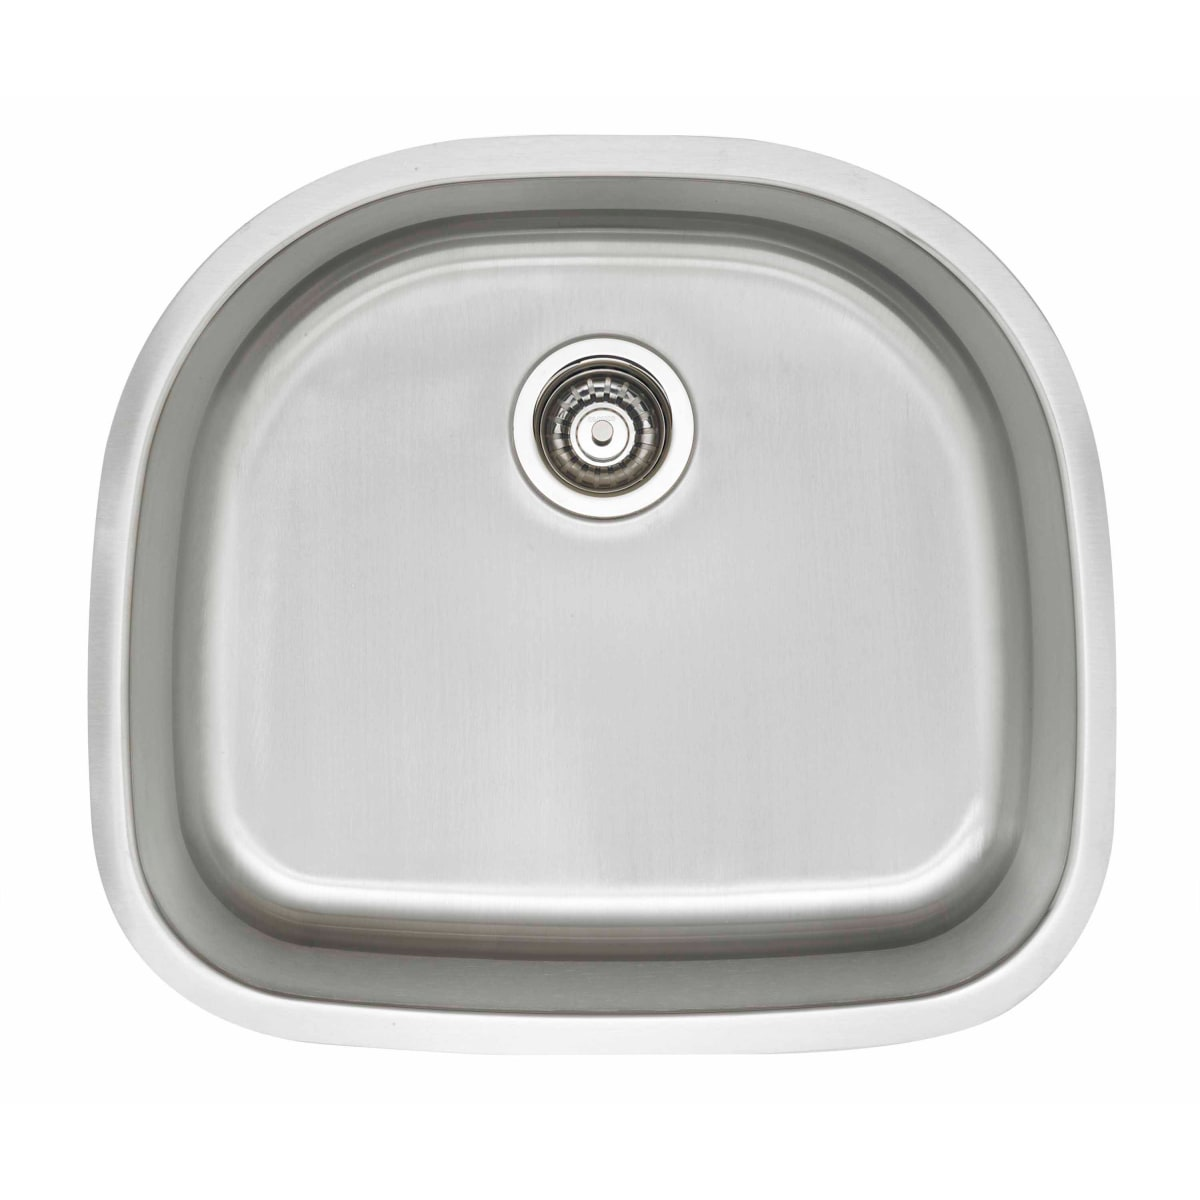 "Blanco Stellar 23-3/8"" Single Basin Undermount Stainless Steel Kitchen Sink"